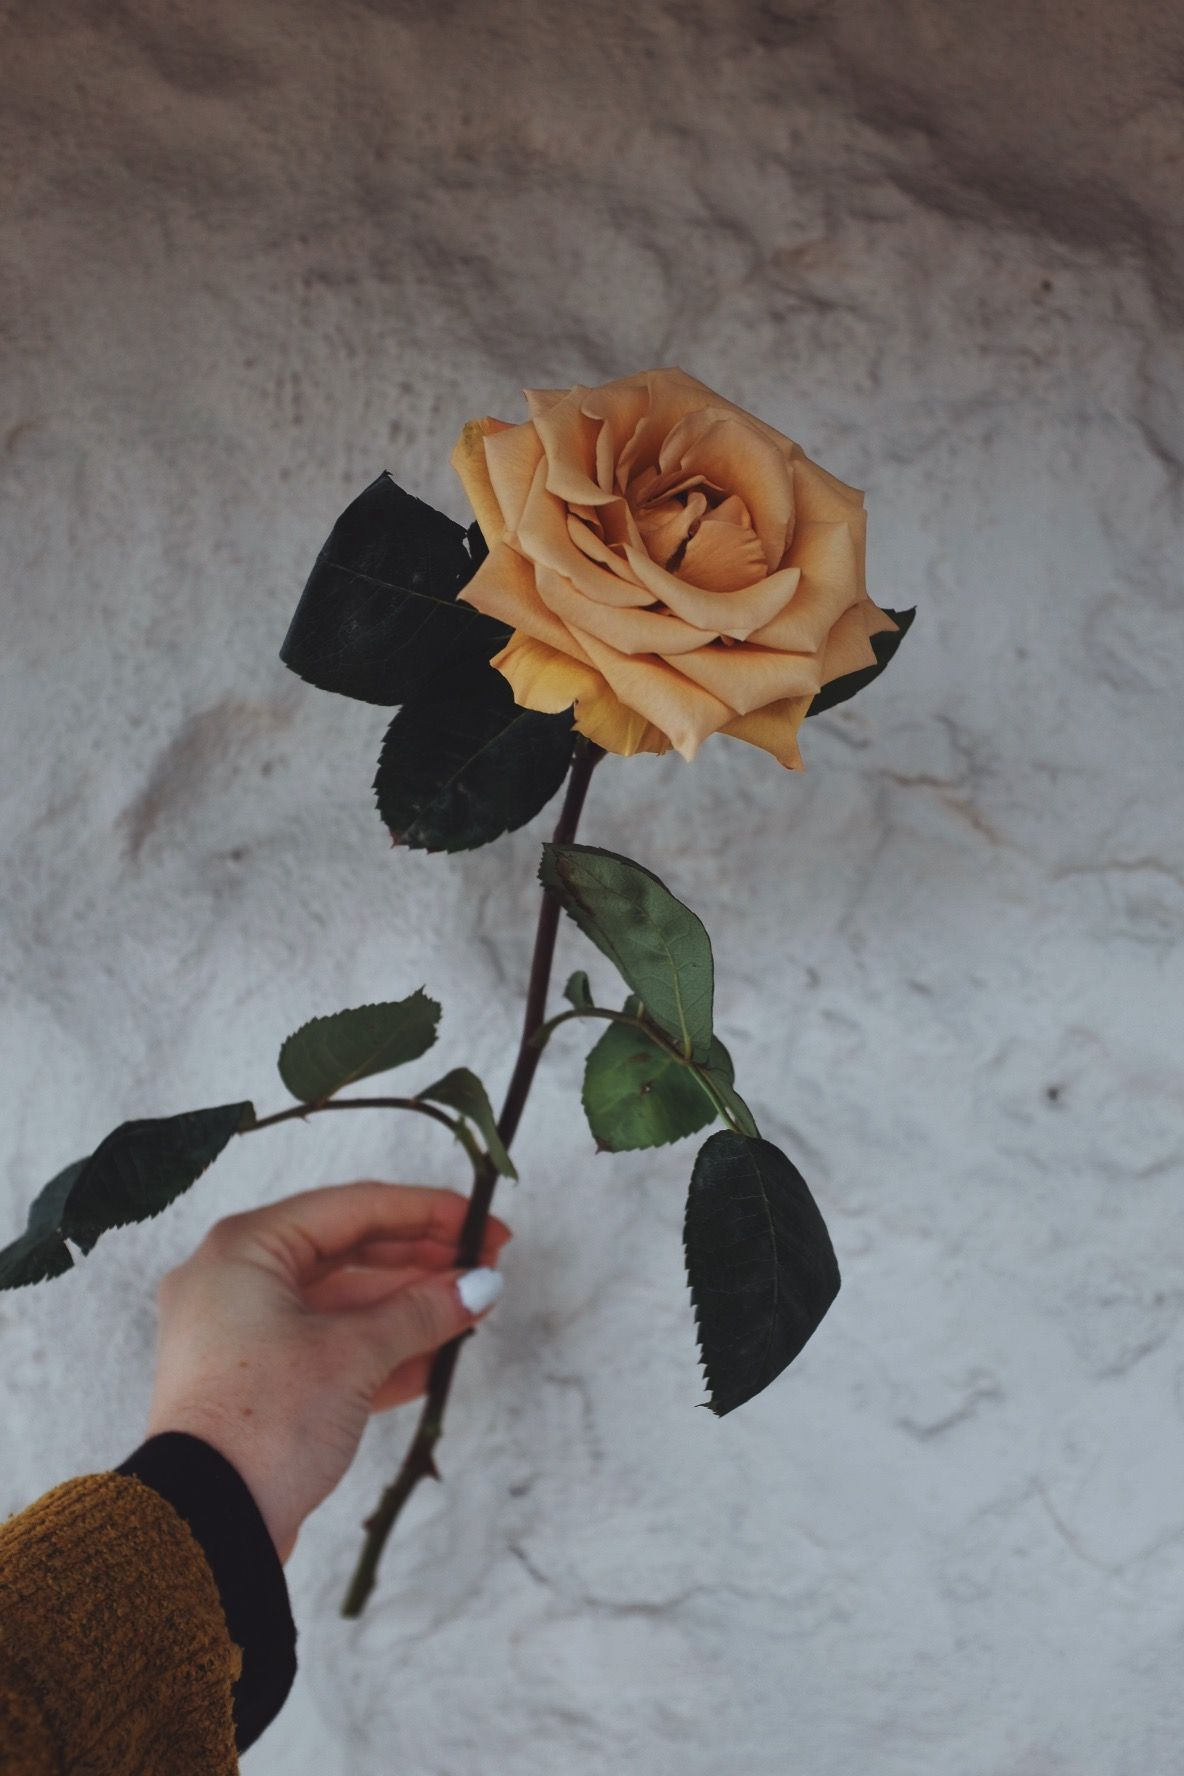 toffee coloured rose, I mean it really doesn't get much